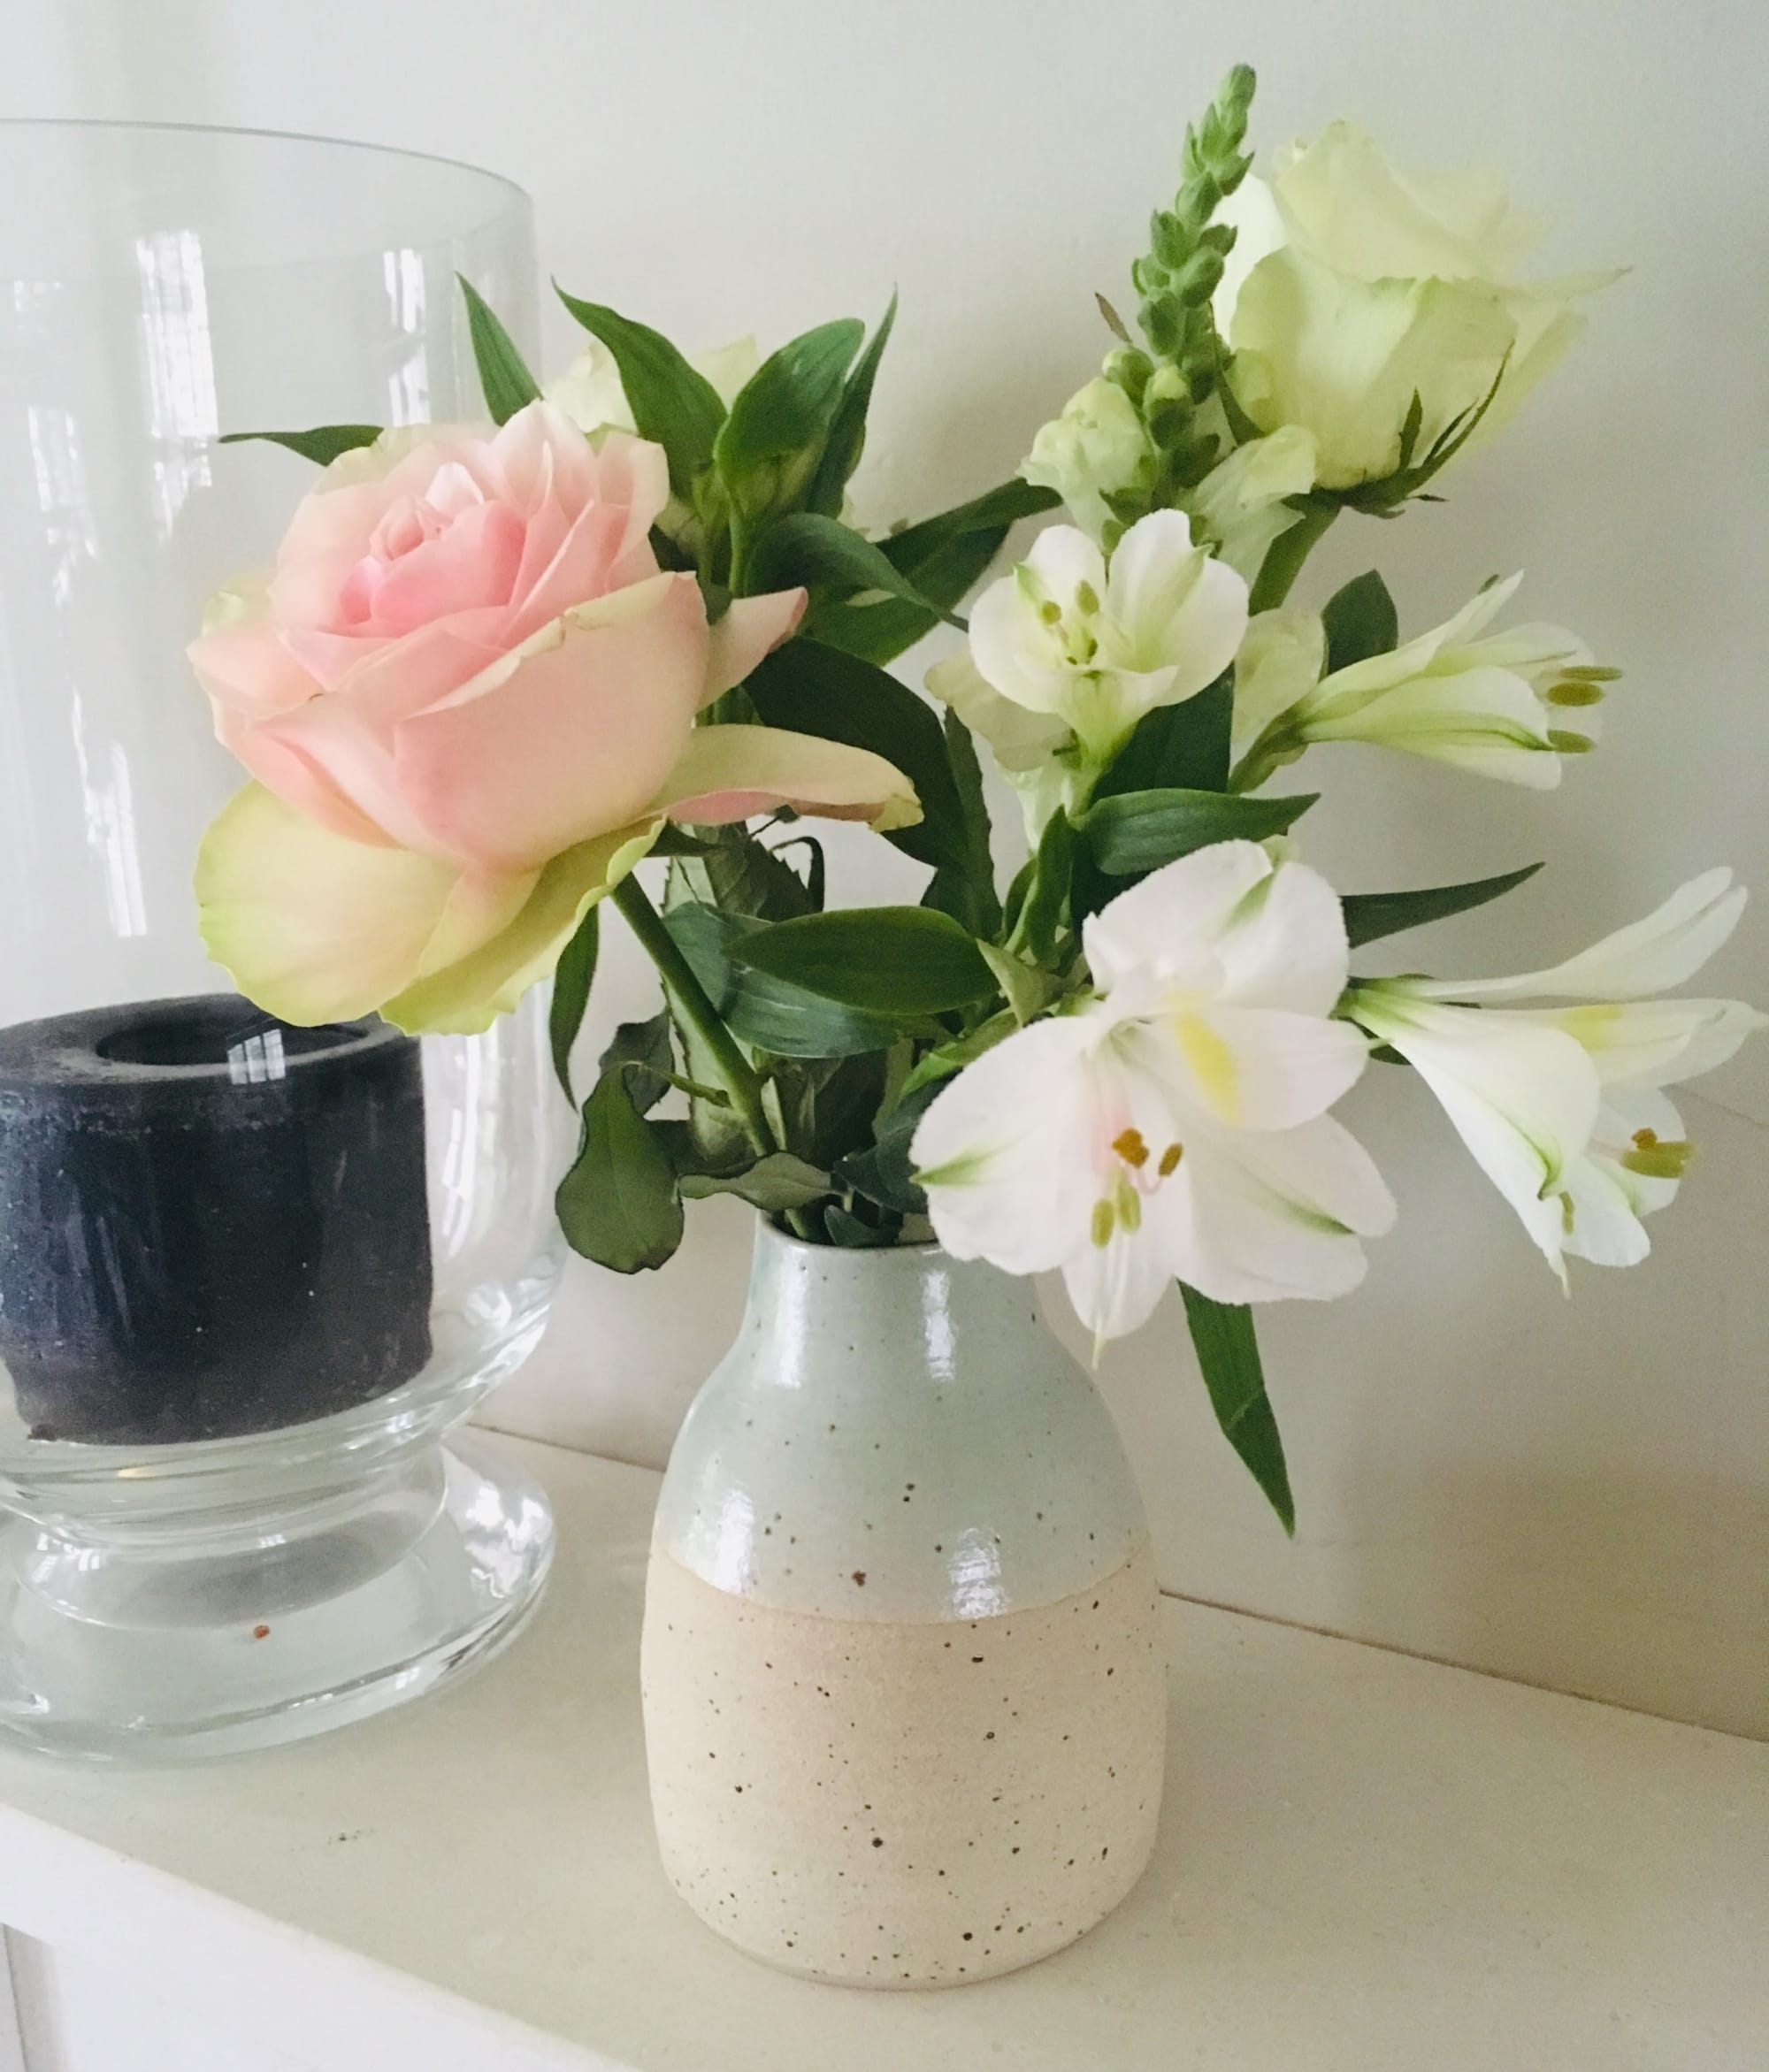 Subtle Speckled Vase in Light Pink and Faint Blue